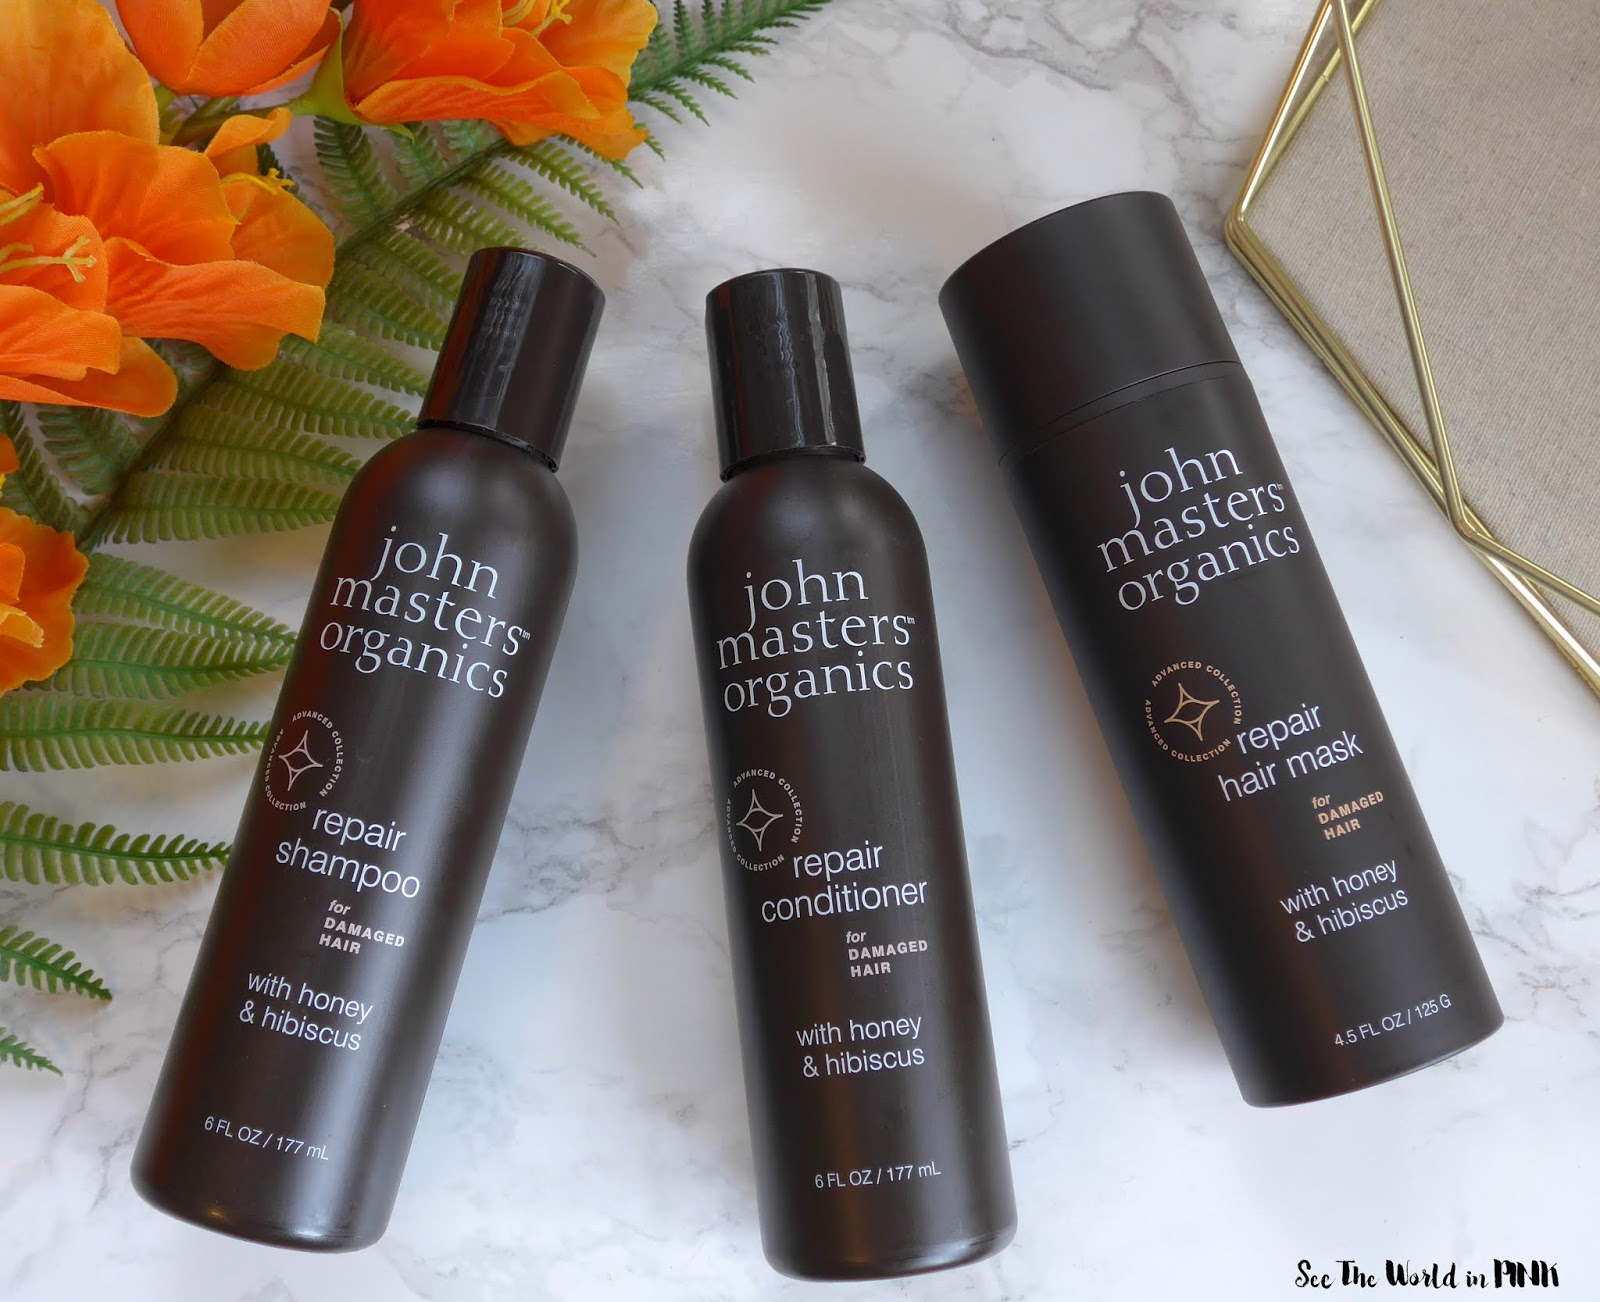 John Masters Organics Repair Line with Honey & Hibiscus